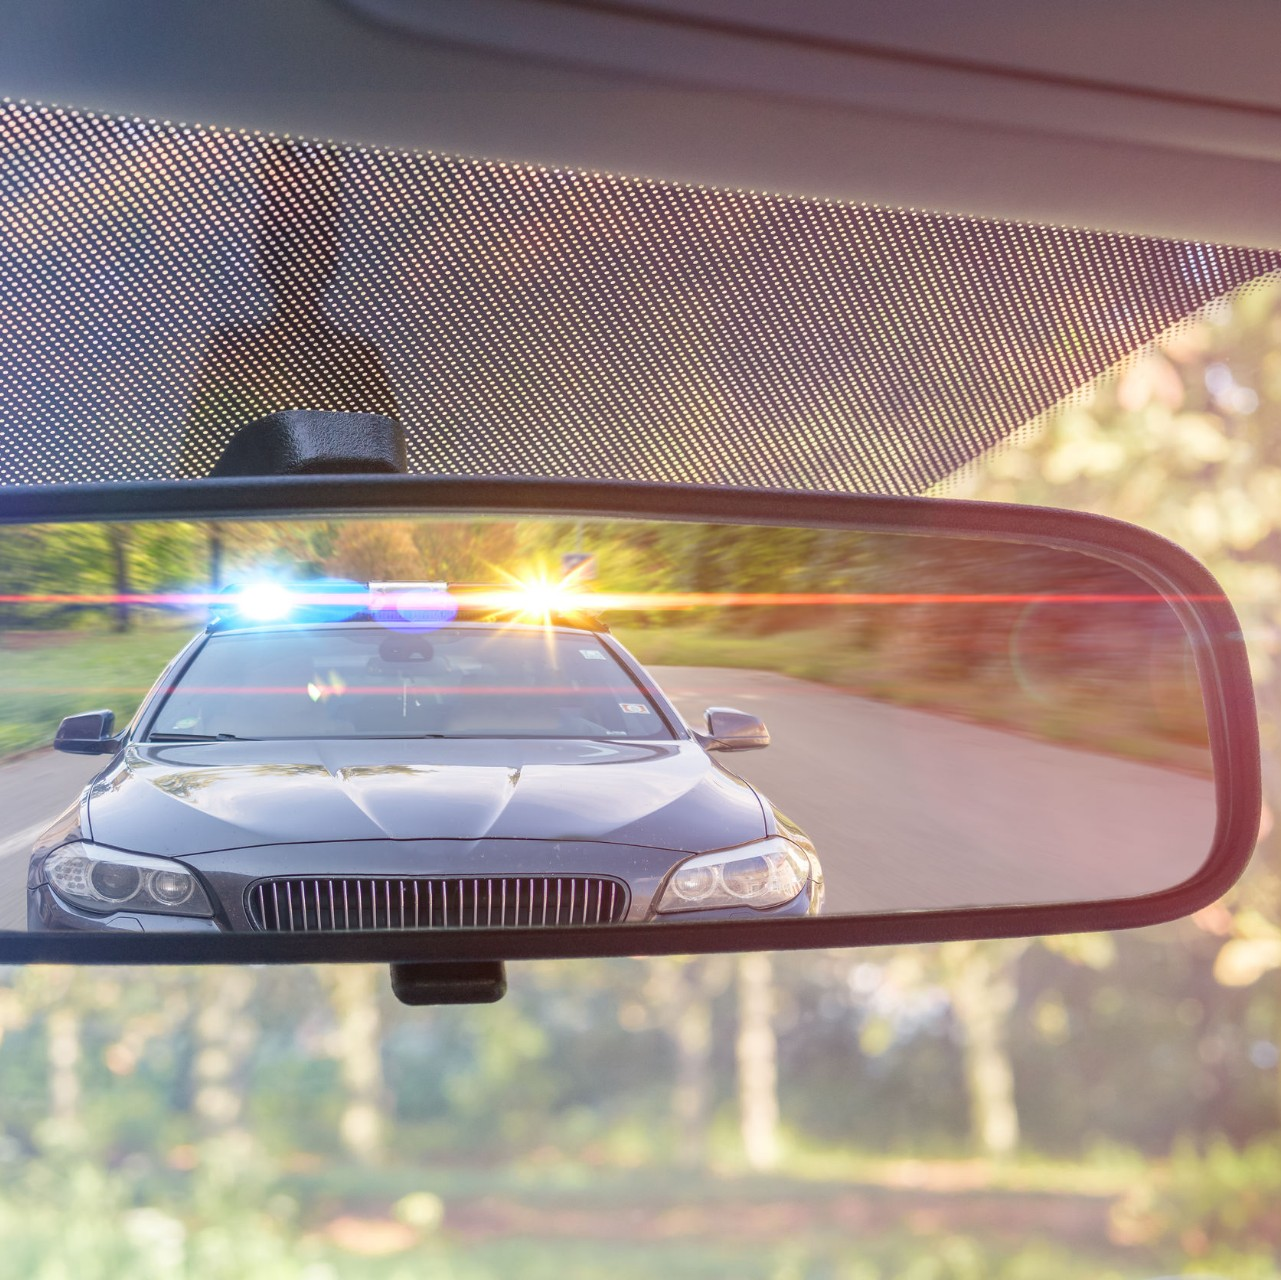 a police car is visible in a car's rear view mirror